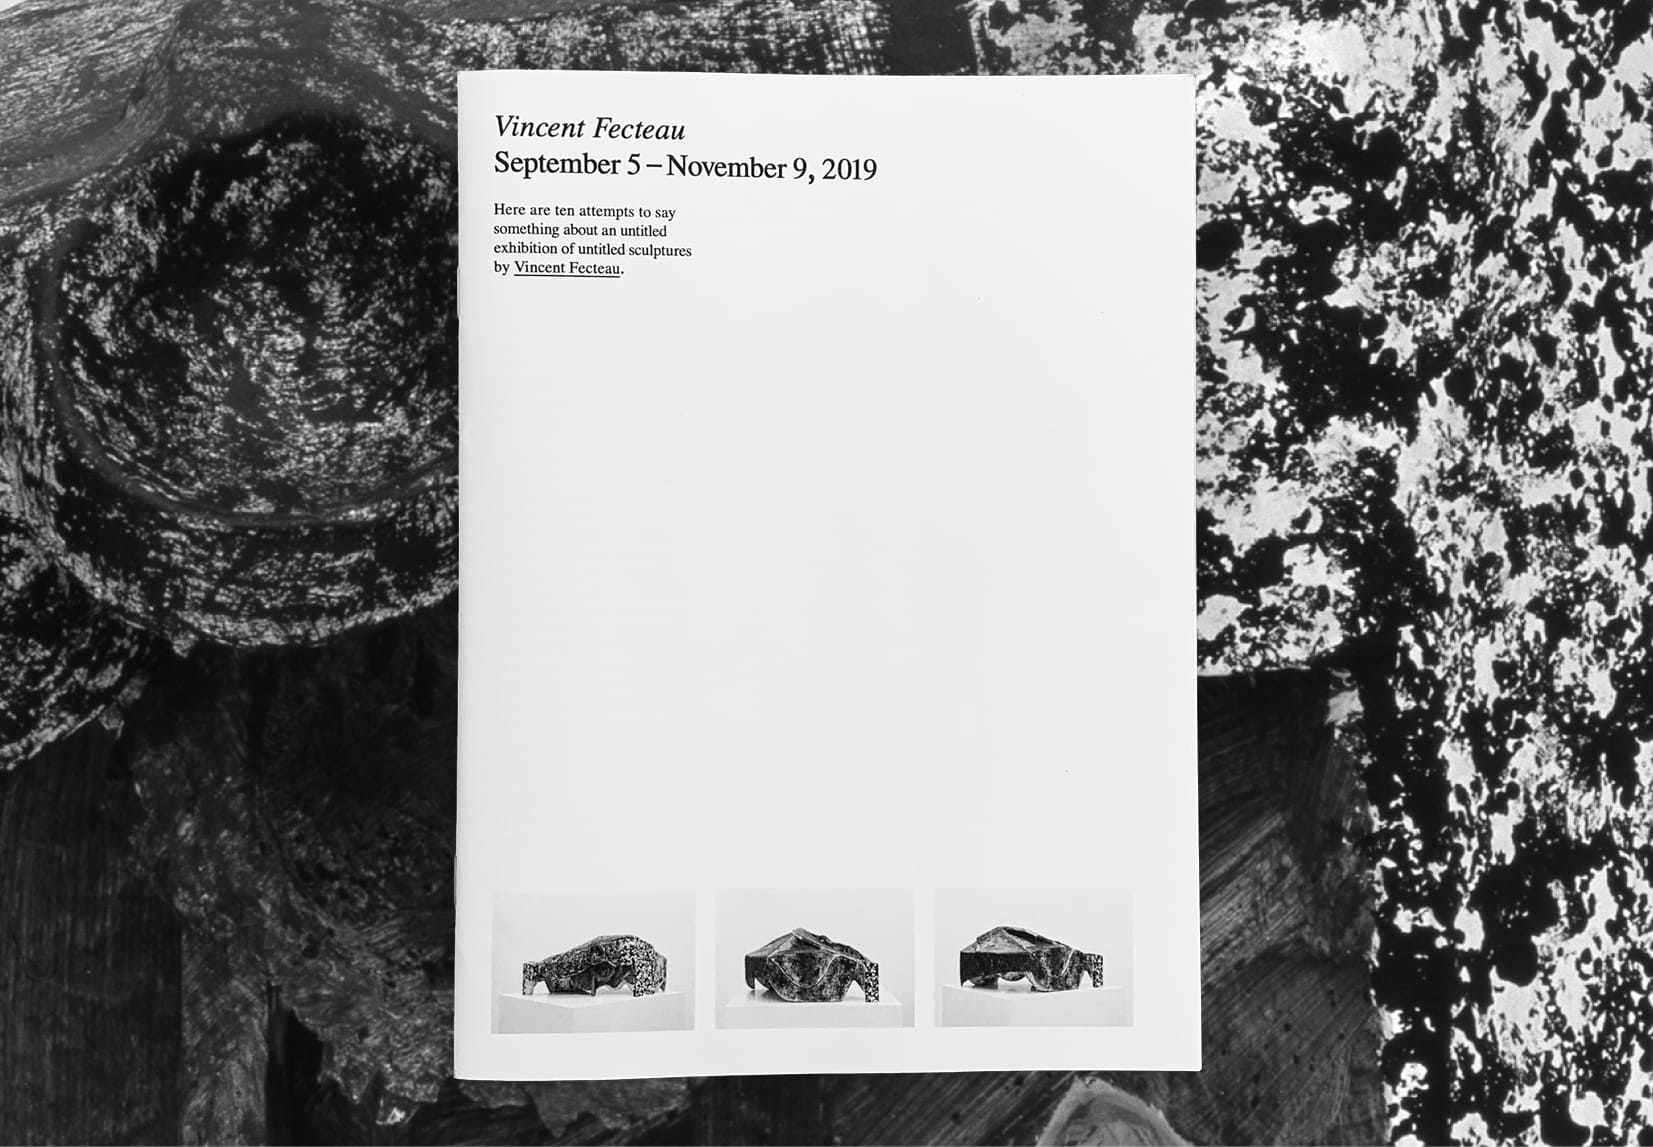 A white exhibition catalog cover floats over an abstract black and white image. The catalog has the artists name on it, Vincent Fecteau, along with three images of the same sculpture from three different perspectives along the bottom. The exhibition took place at The Wattis Institute.